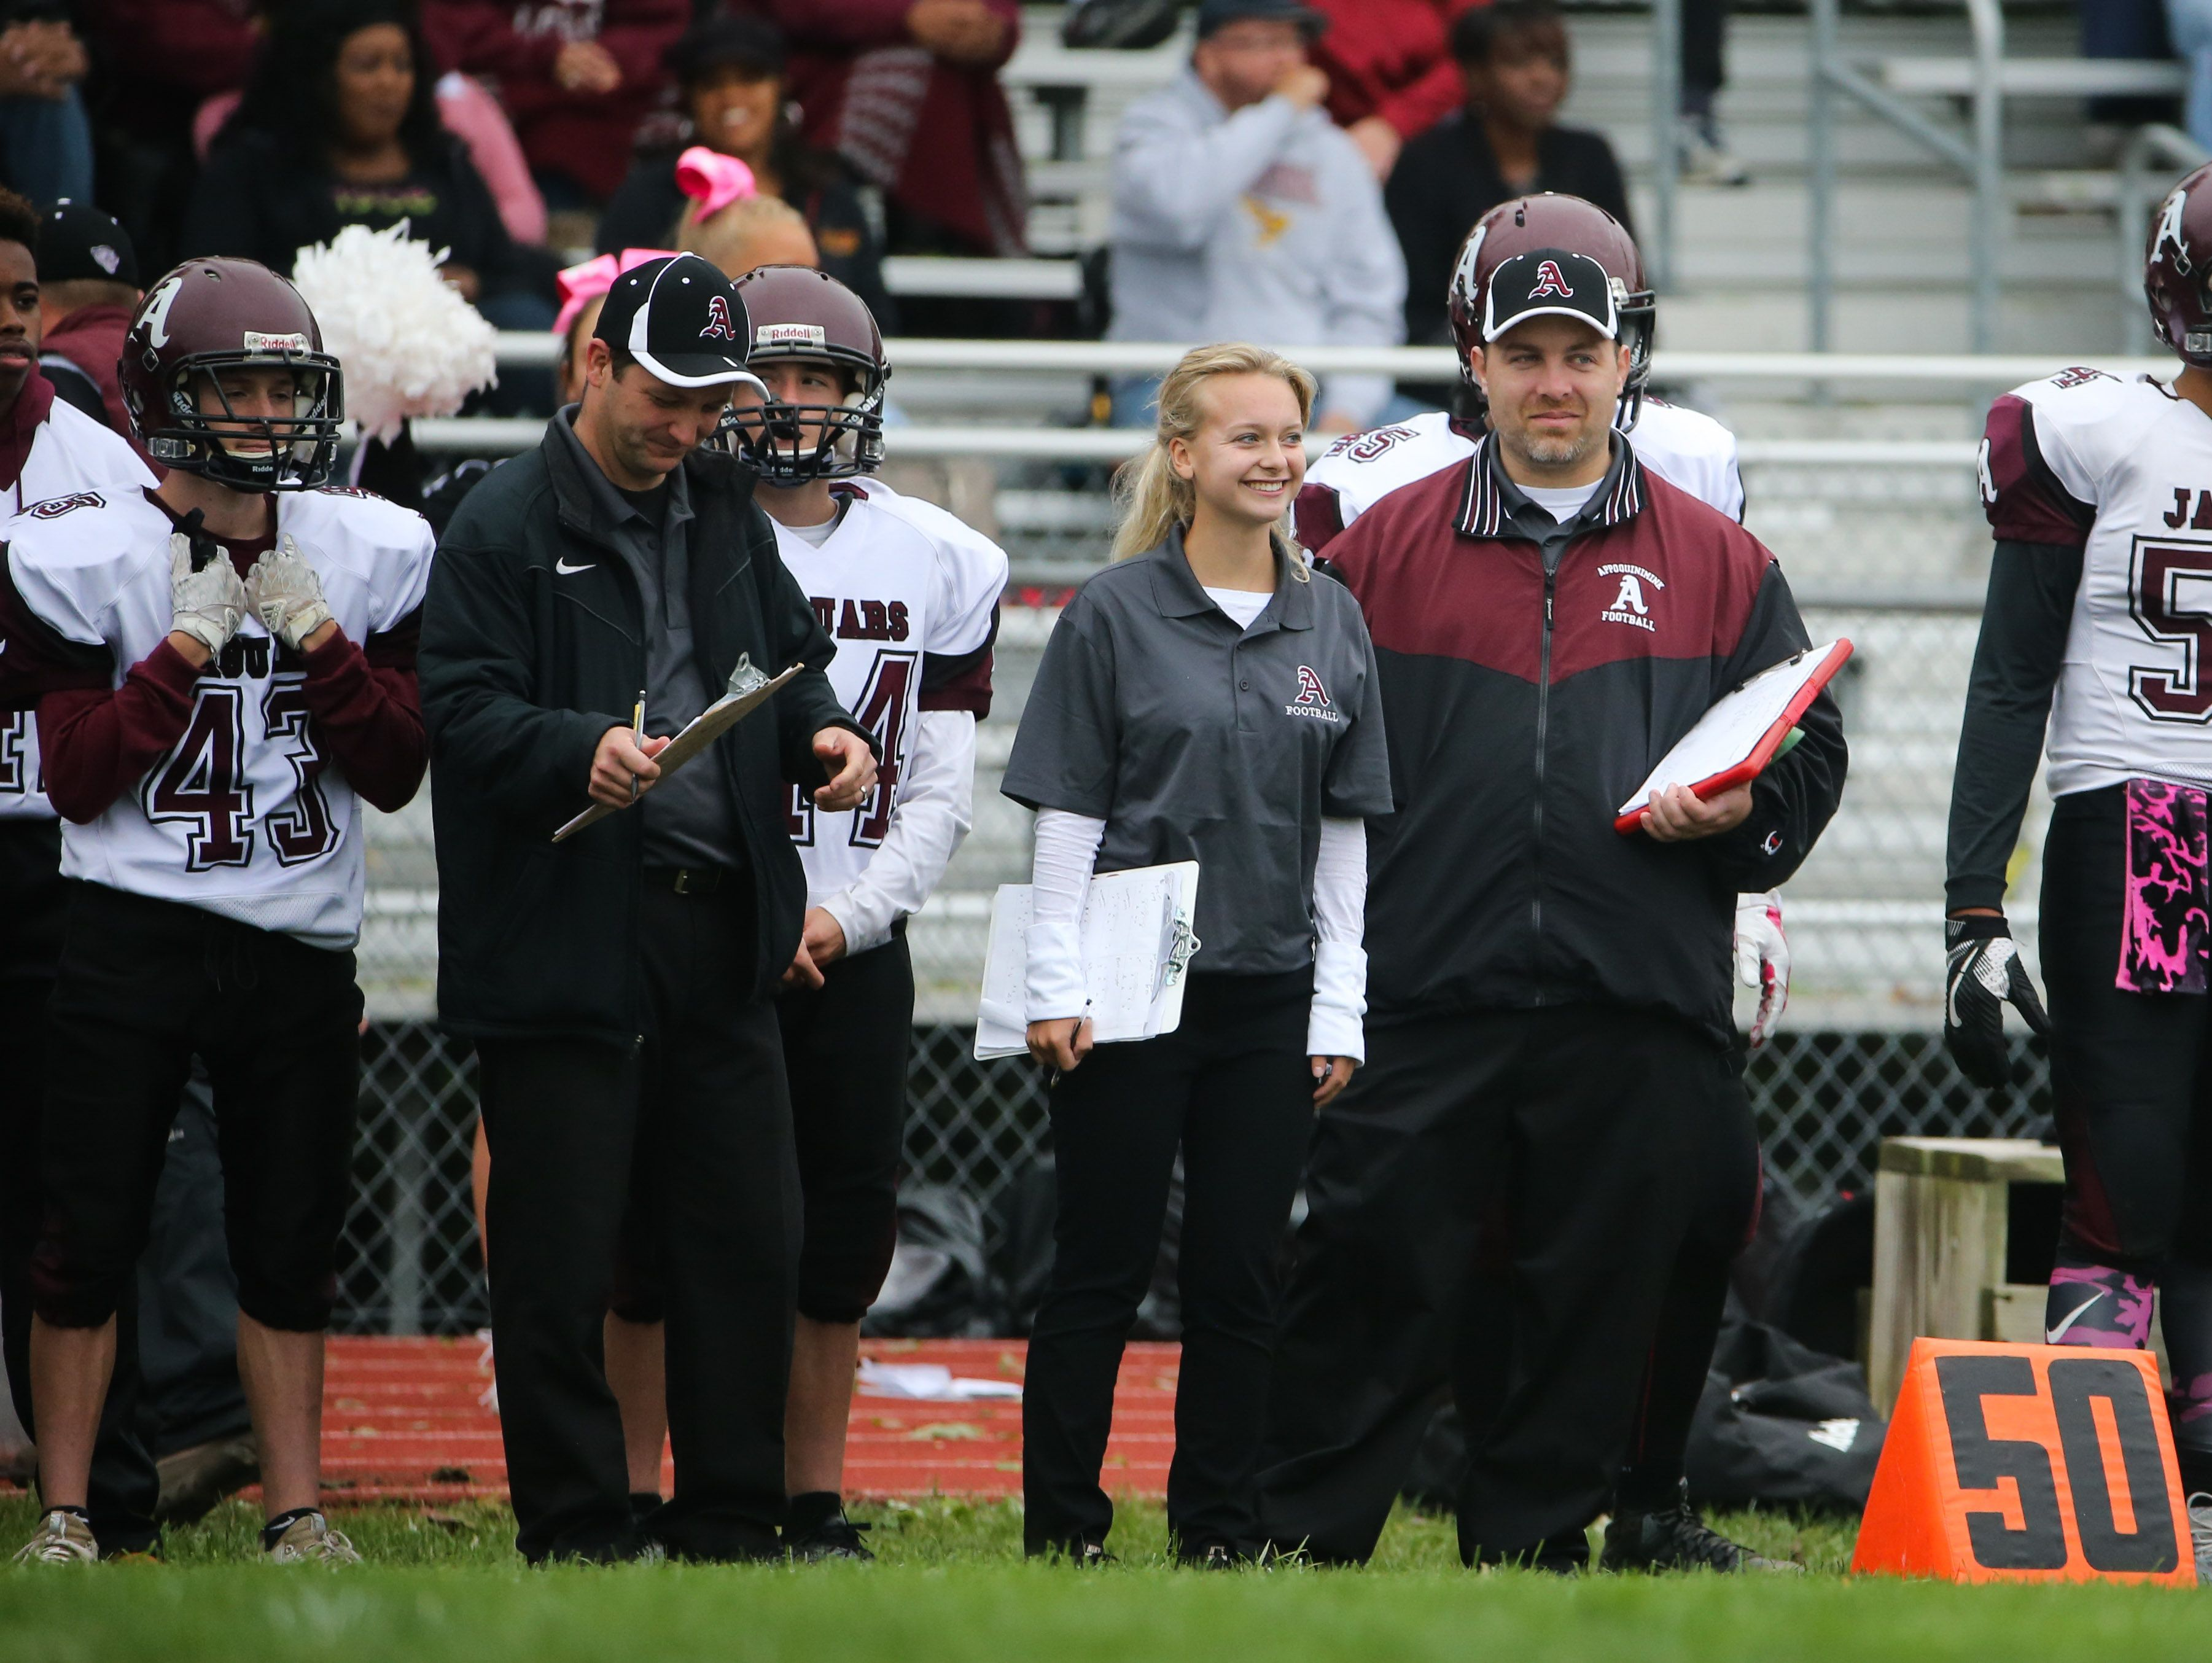 Appoquinimink student associate coach Julia Catalano works on the sideline during the Jaguars' game against Concord last month.